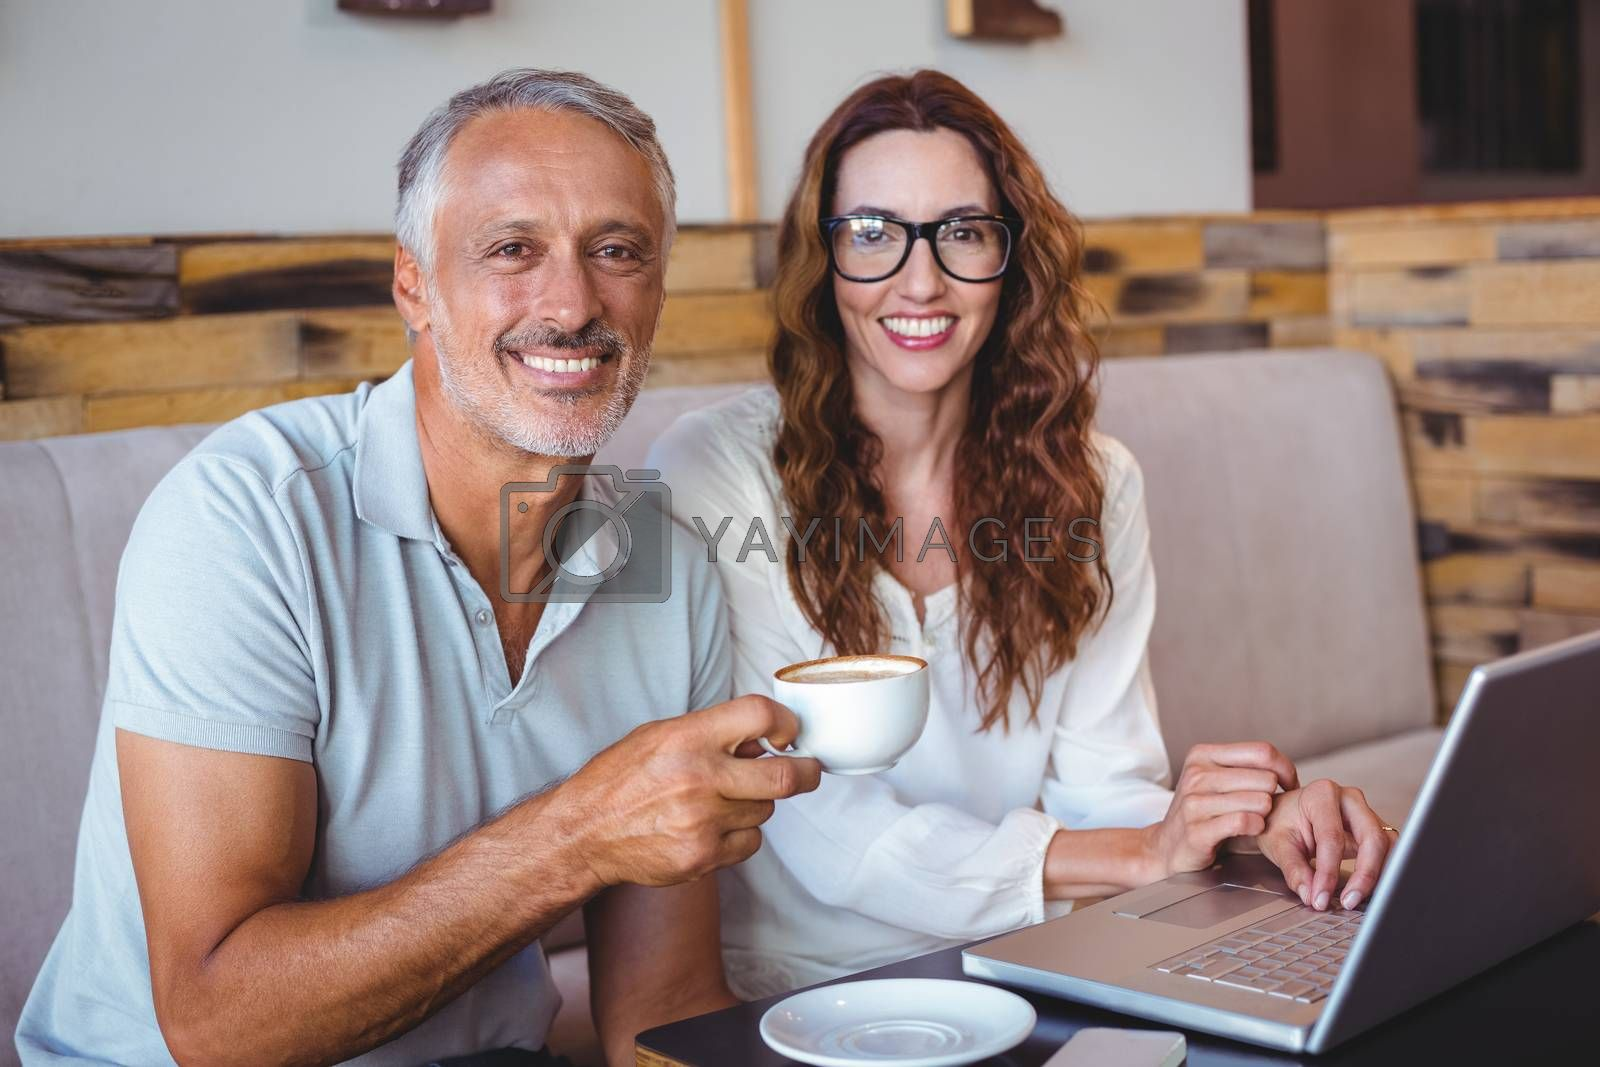 Royalty free image of casual business people working by Wavebreakmedia